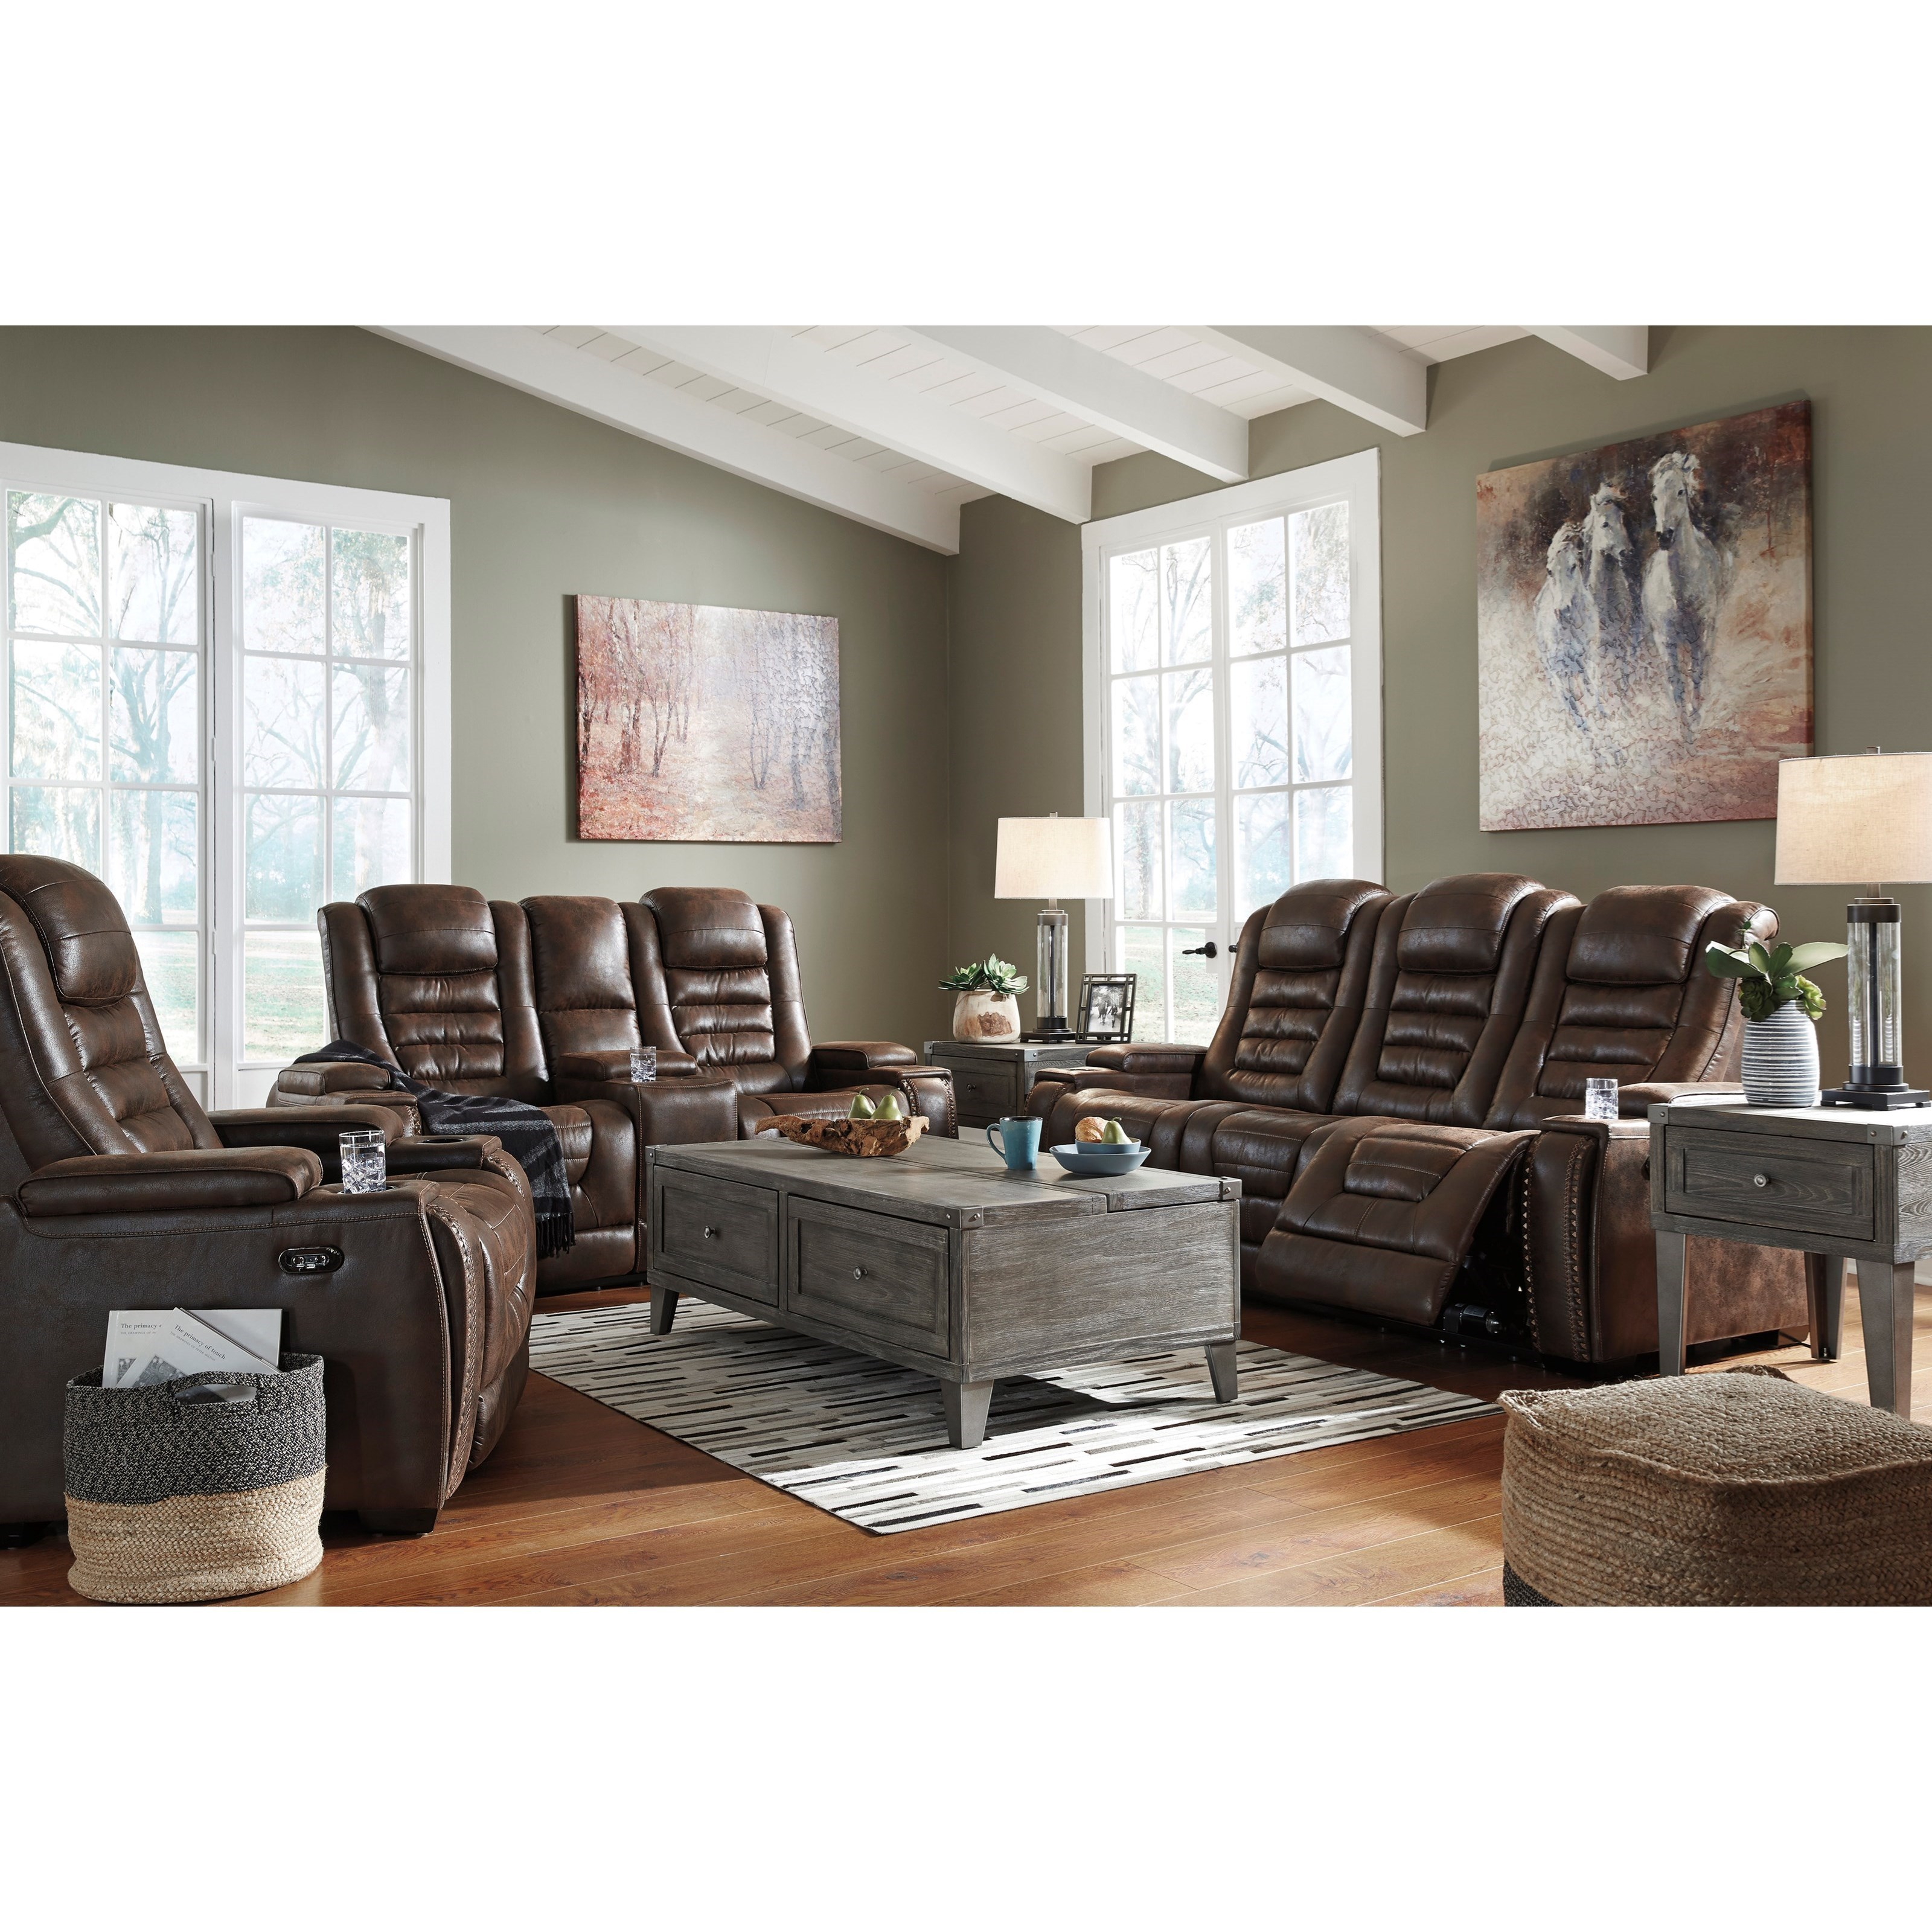 Game Zone Reclining Living Room Group by Signature Design by Ashley at Miller Waldrop Furniture and Decor